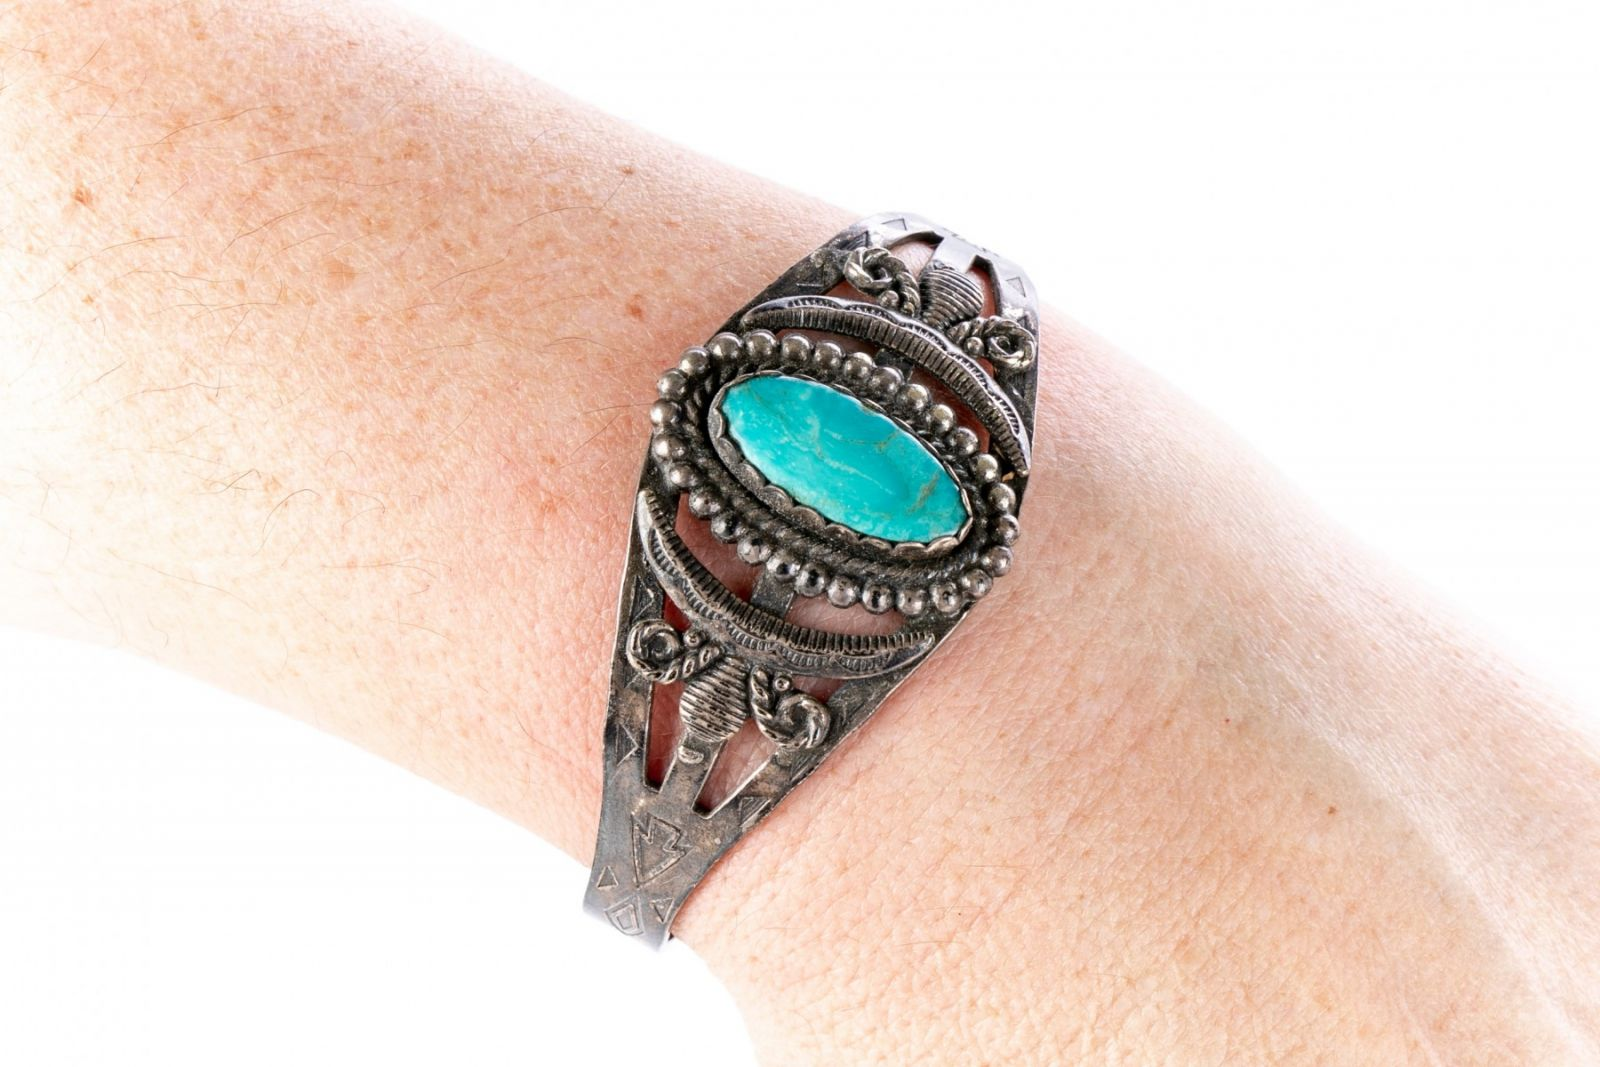 Native American jewelry and sterling silver cuff with turquoise